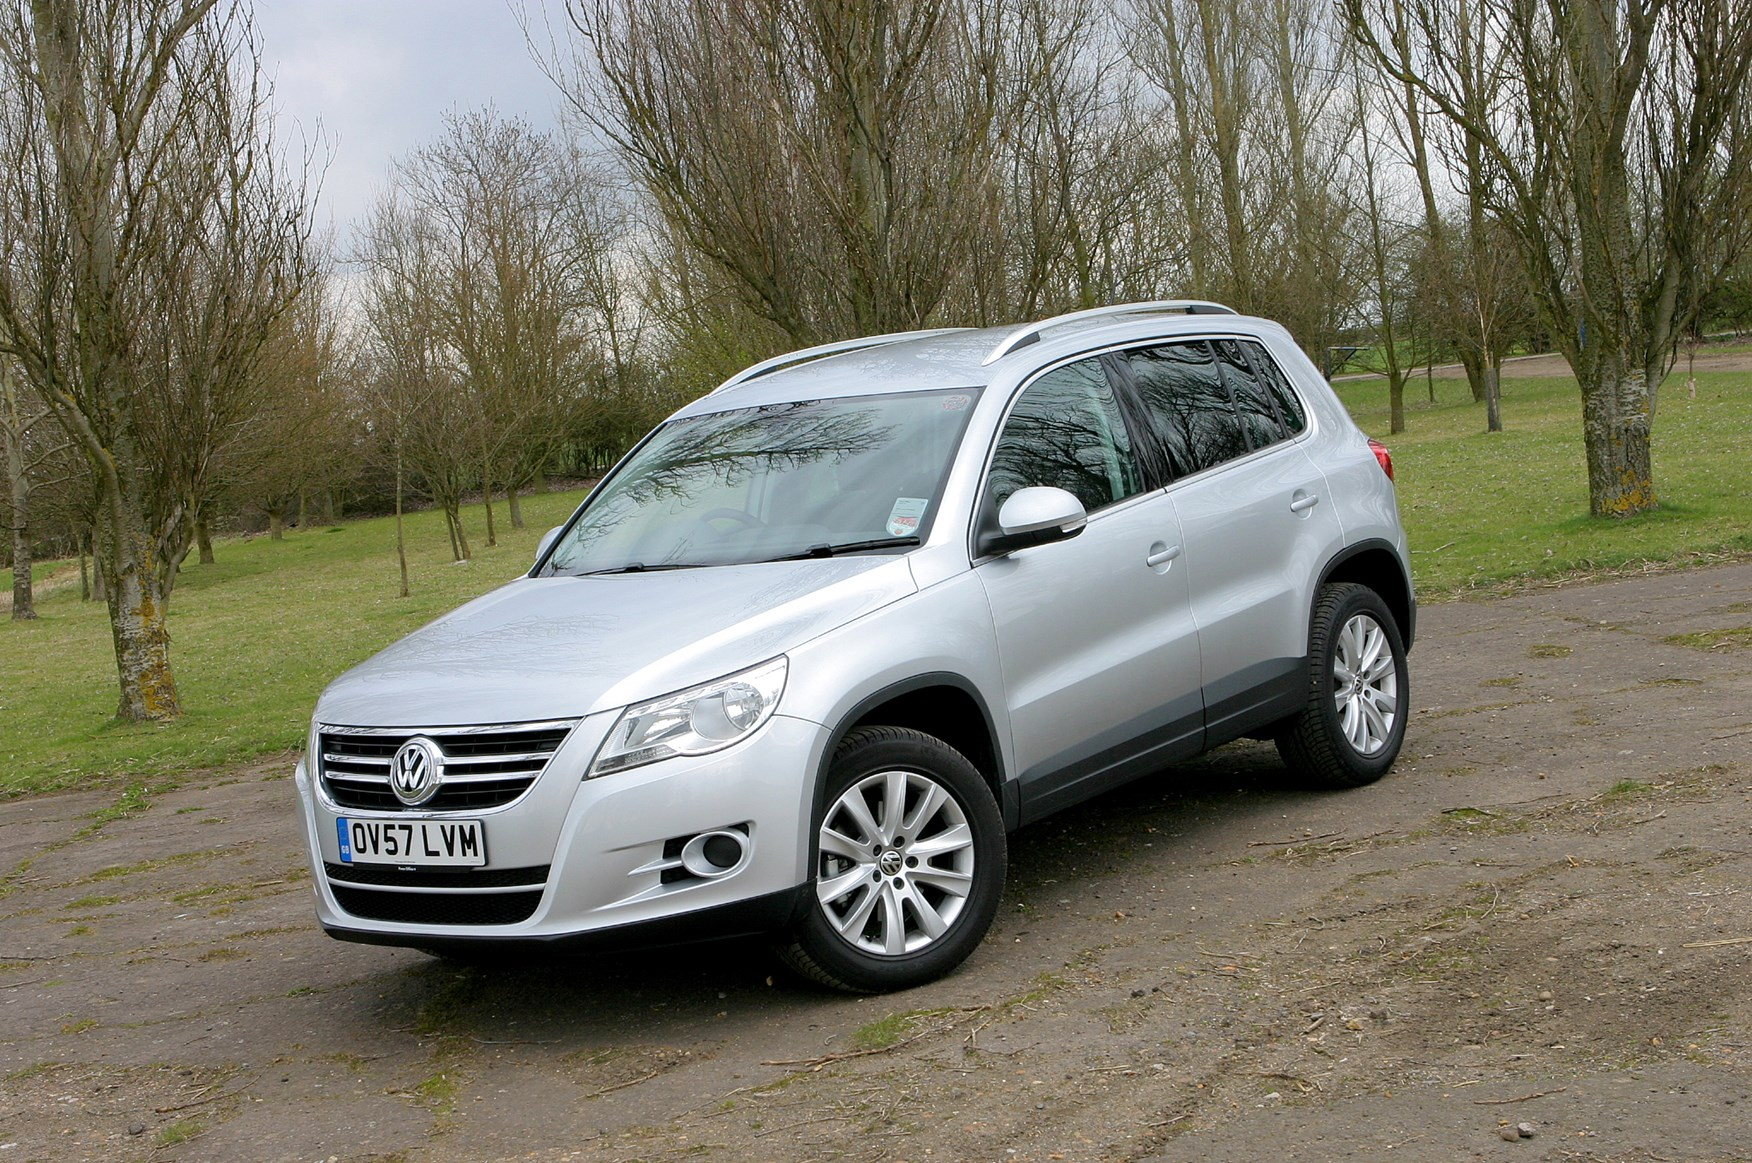 Used Volkswagen Tiguan Estate (2008 - 2016) Review   Parkers